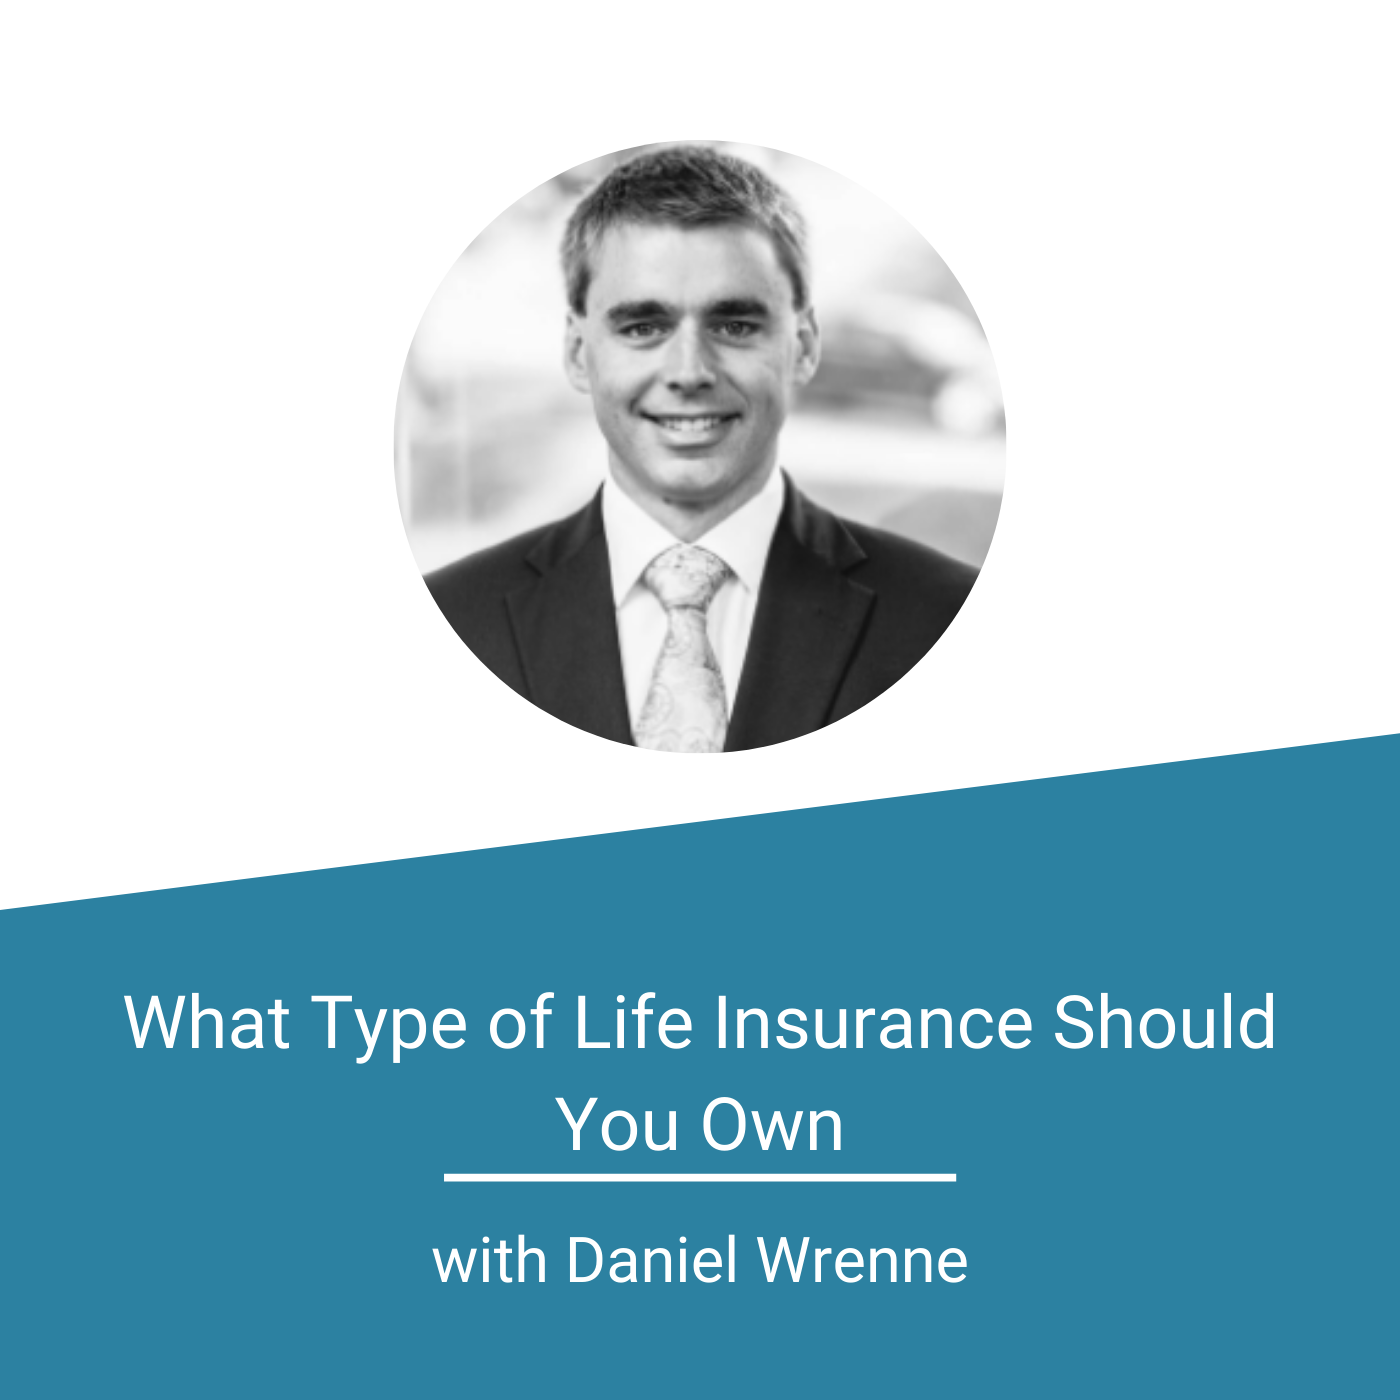 Featured Image - What Type of Life Insurance Should You Own